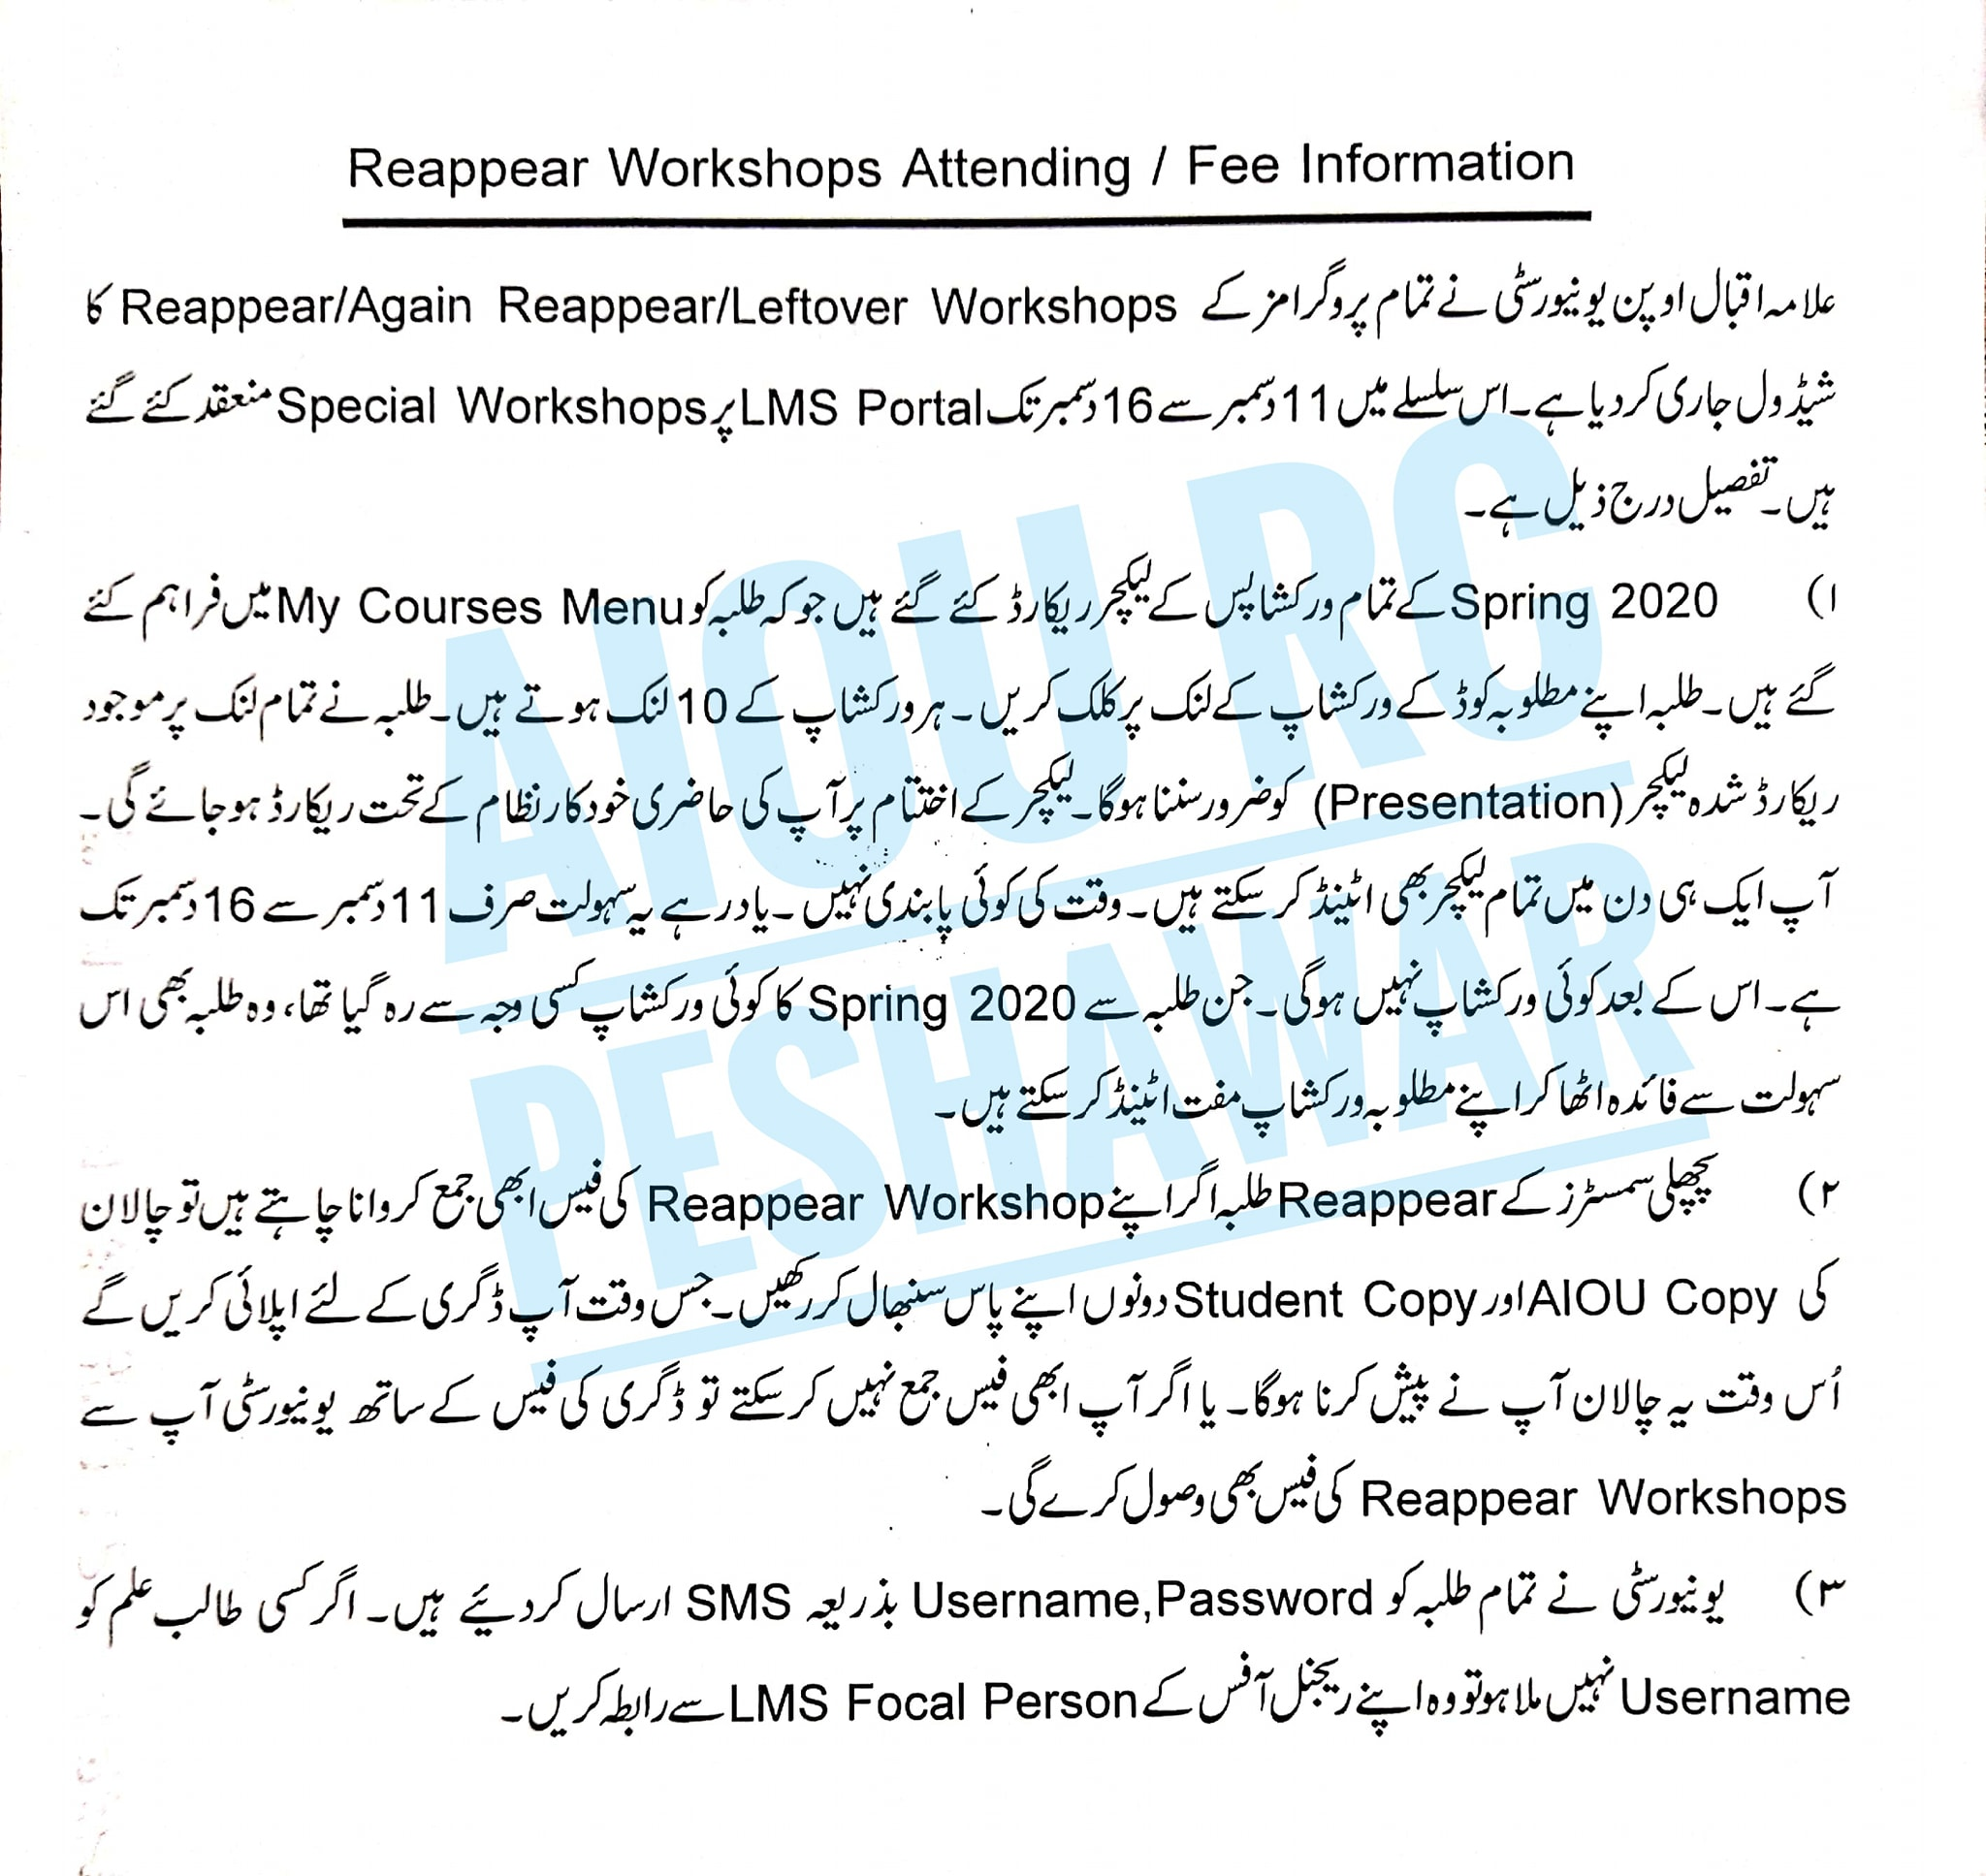 Detail of the Schedule for Reappear Workshops Attending Fee Information